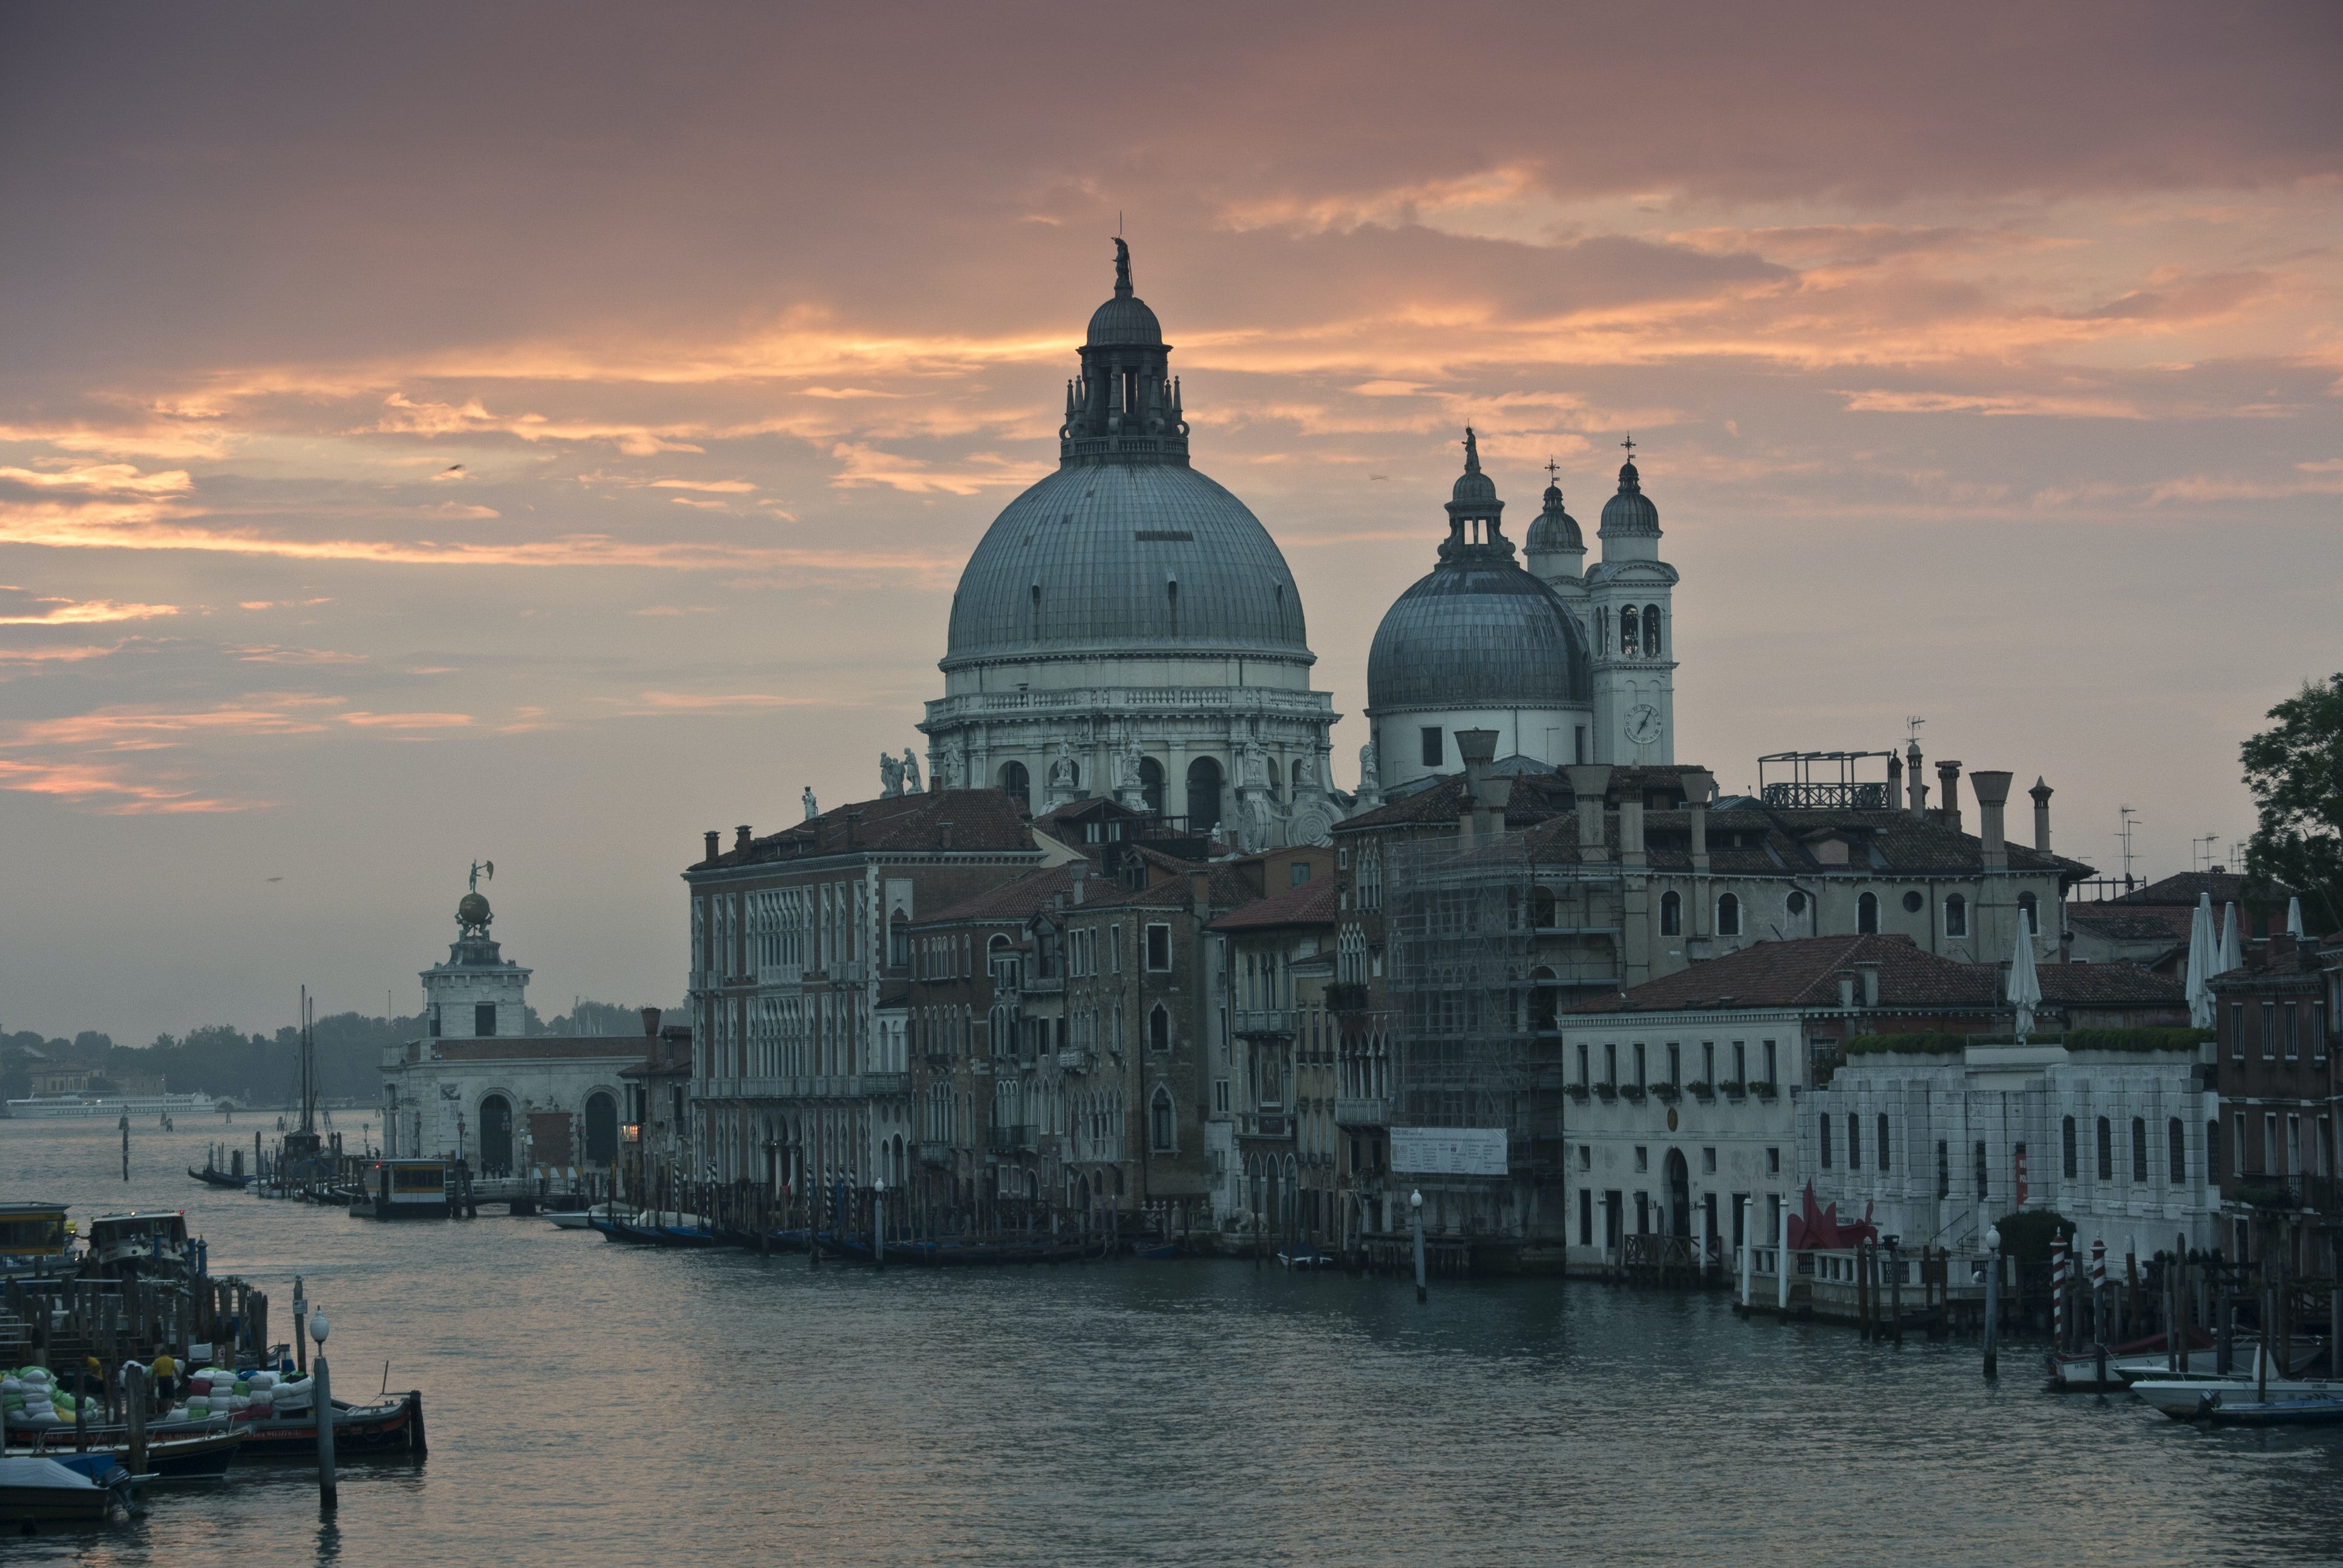 Light orange and pink sunset reflected in the water in Venice, with clear cityscape and architecture in detail.